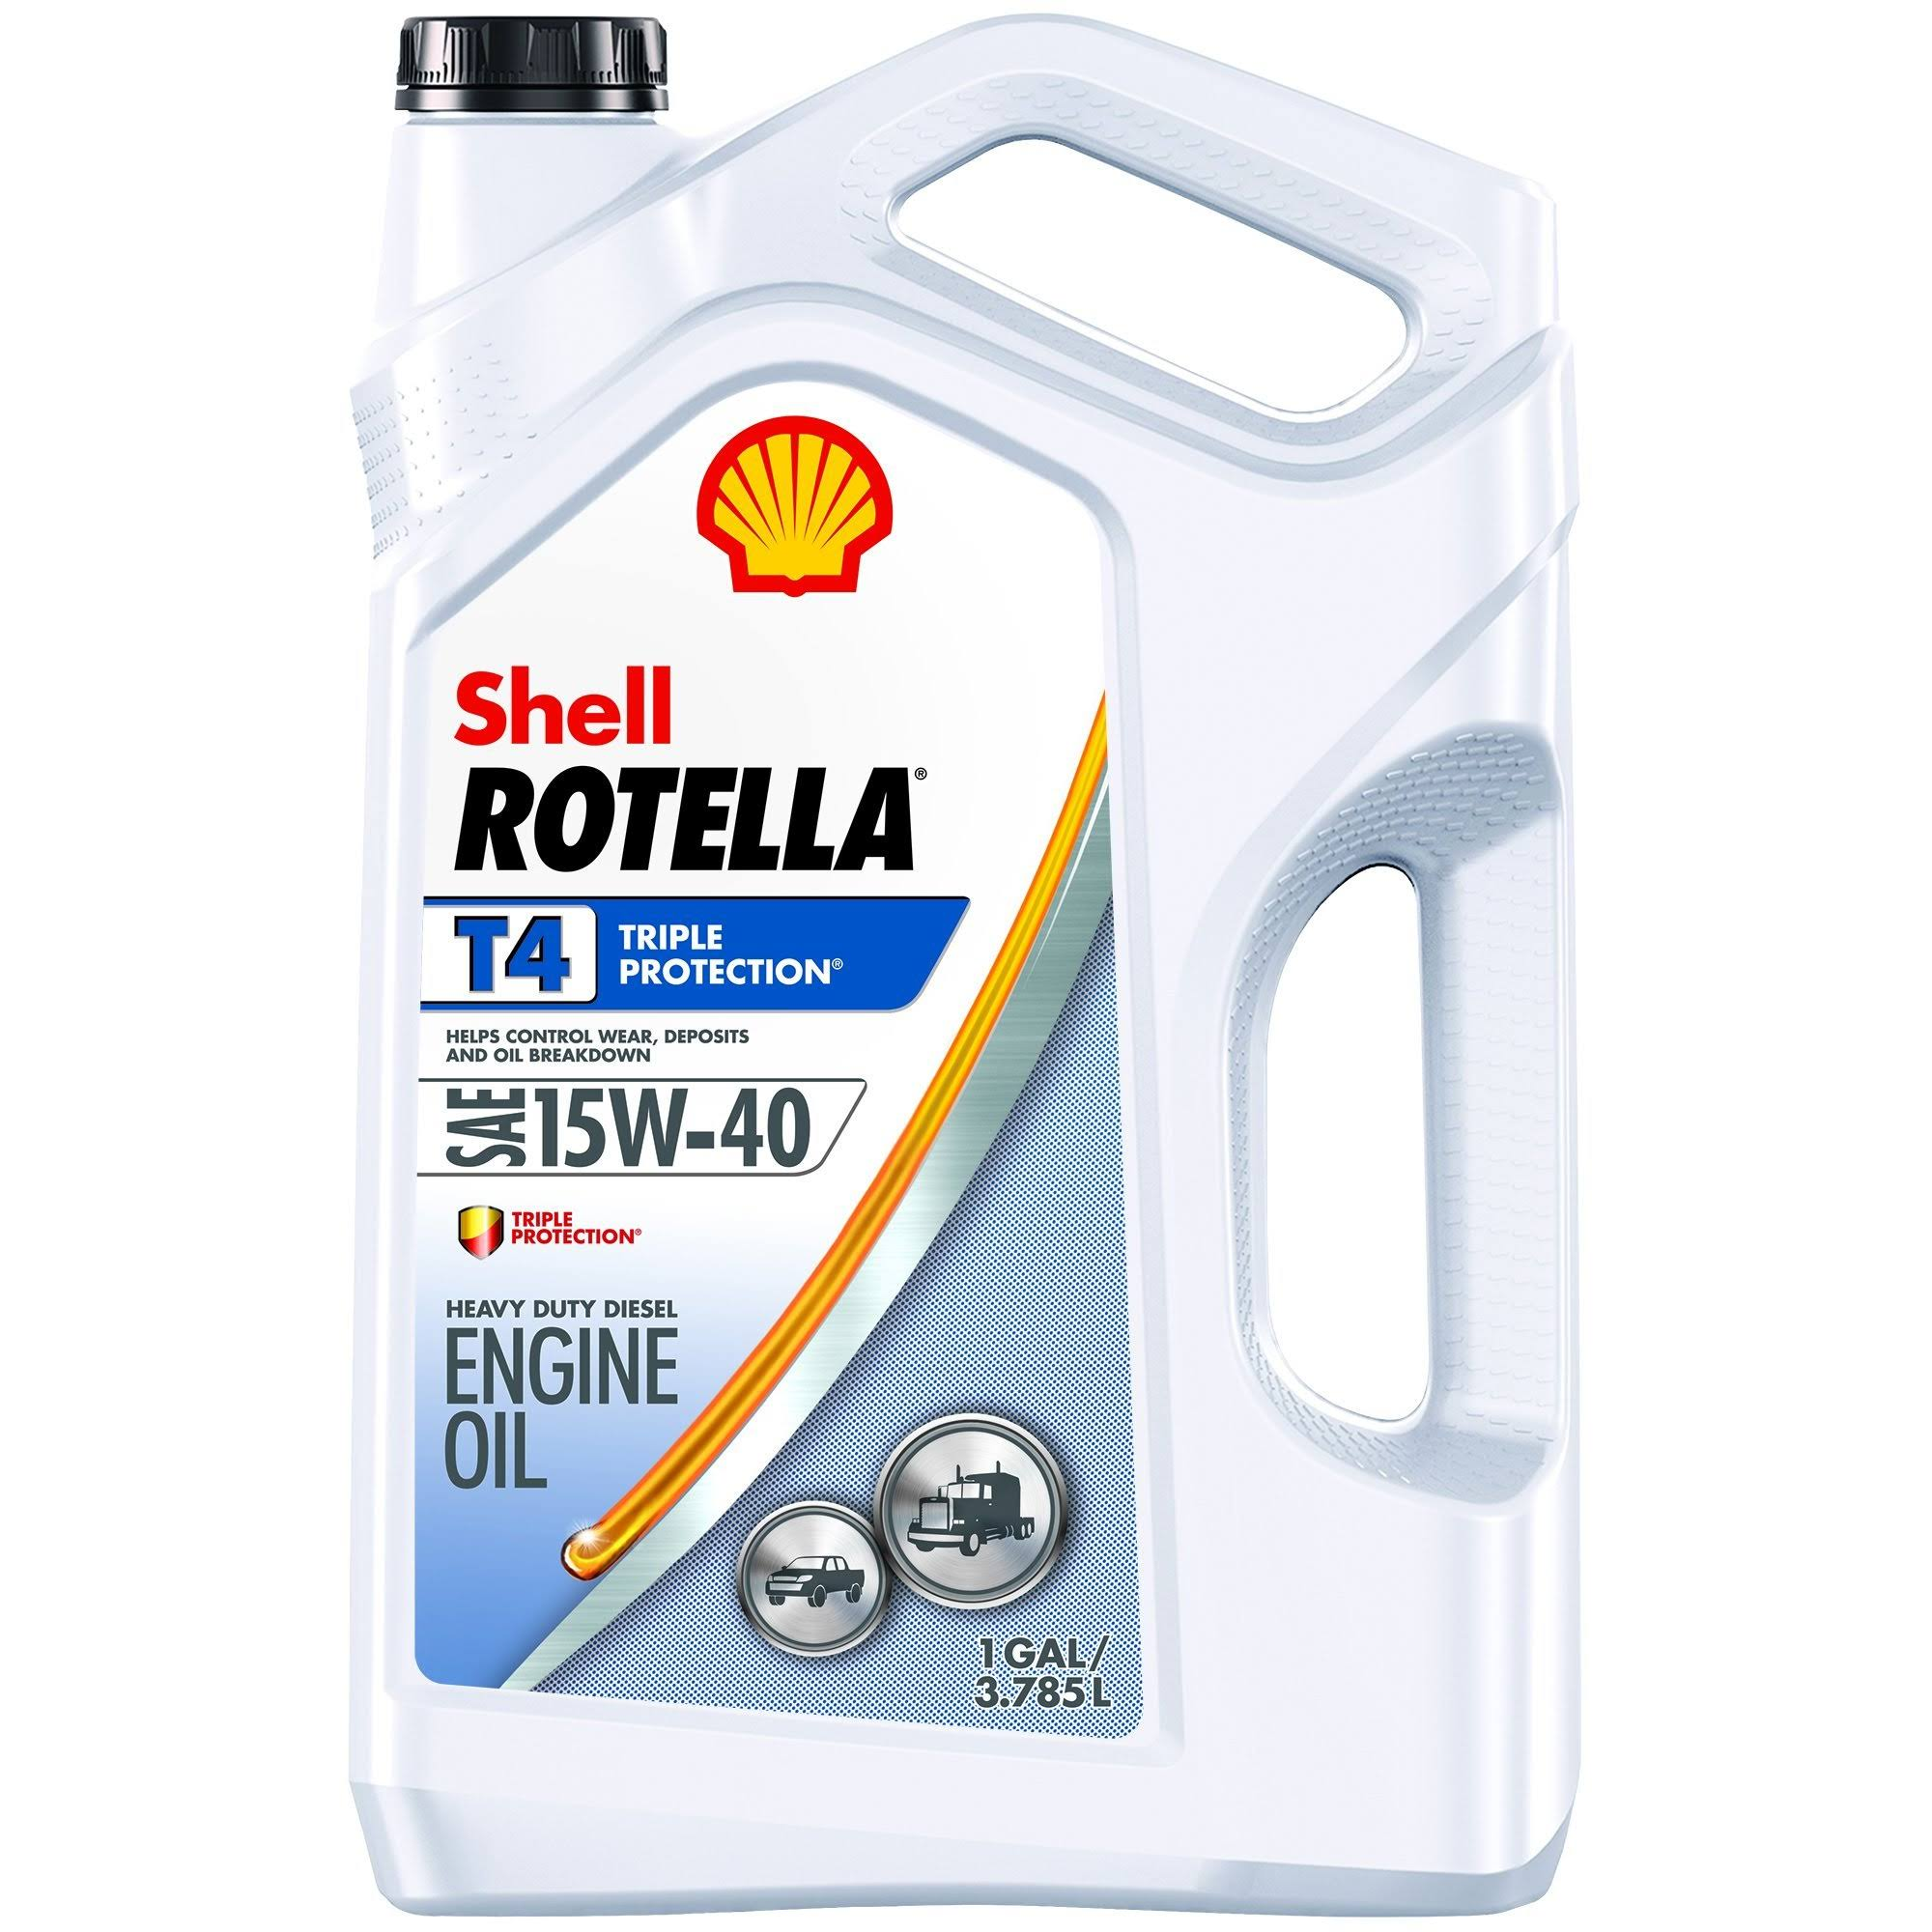 Shell Rotella T4 15W-40 Engine Oil - 3.785l